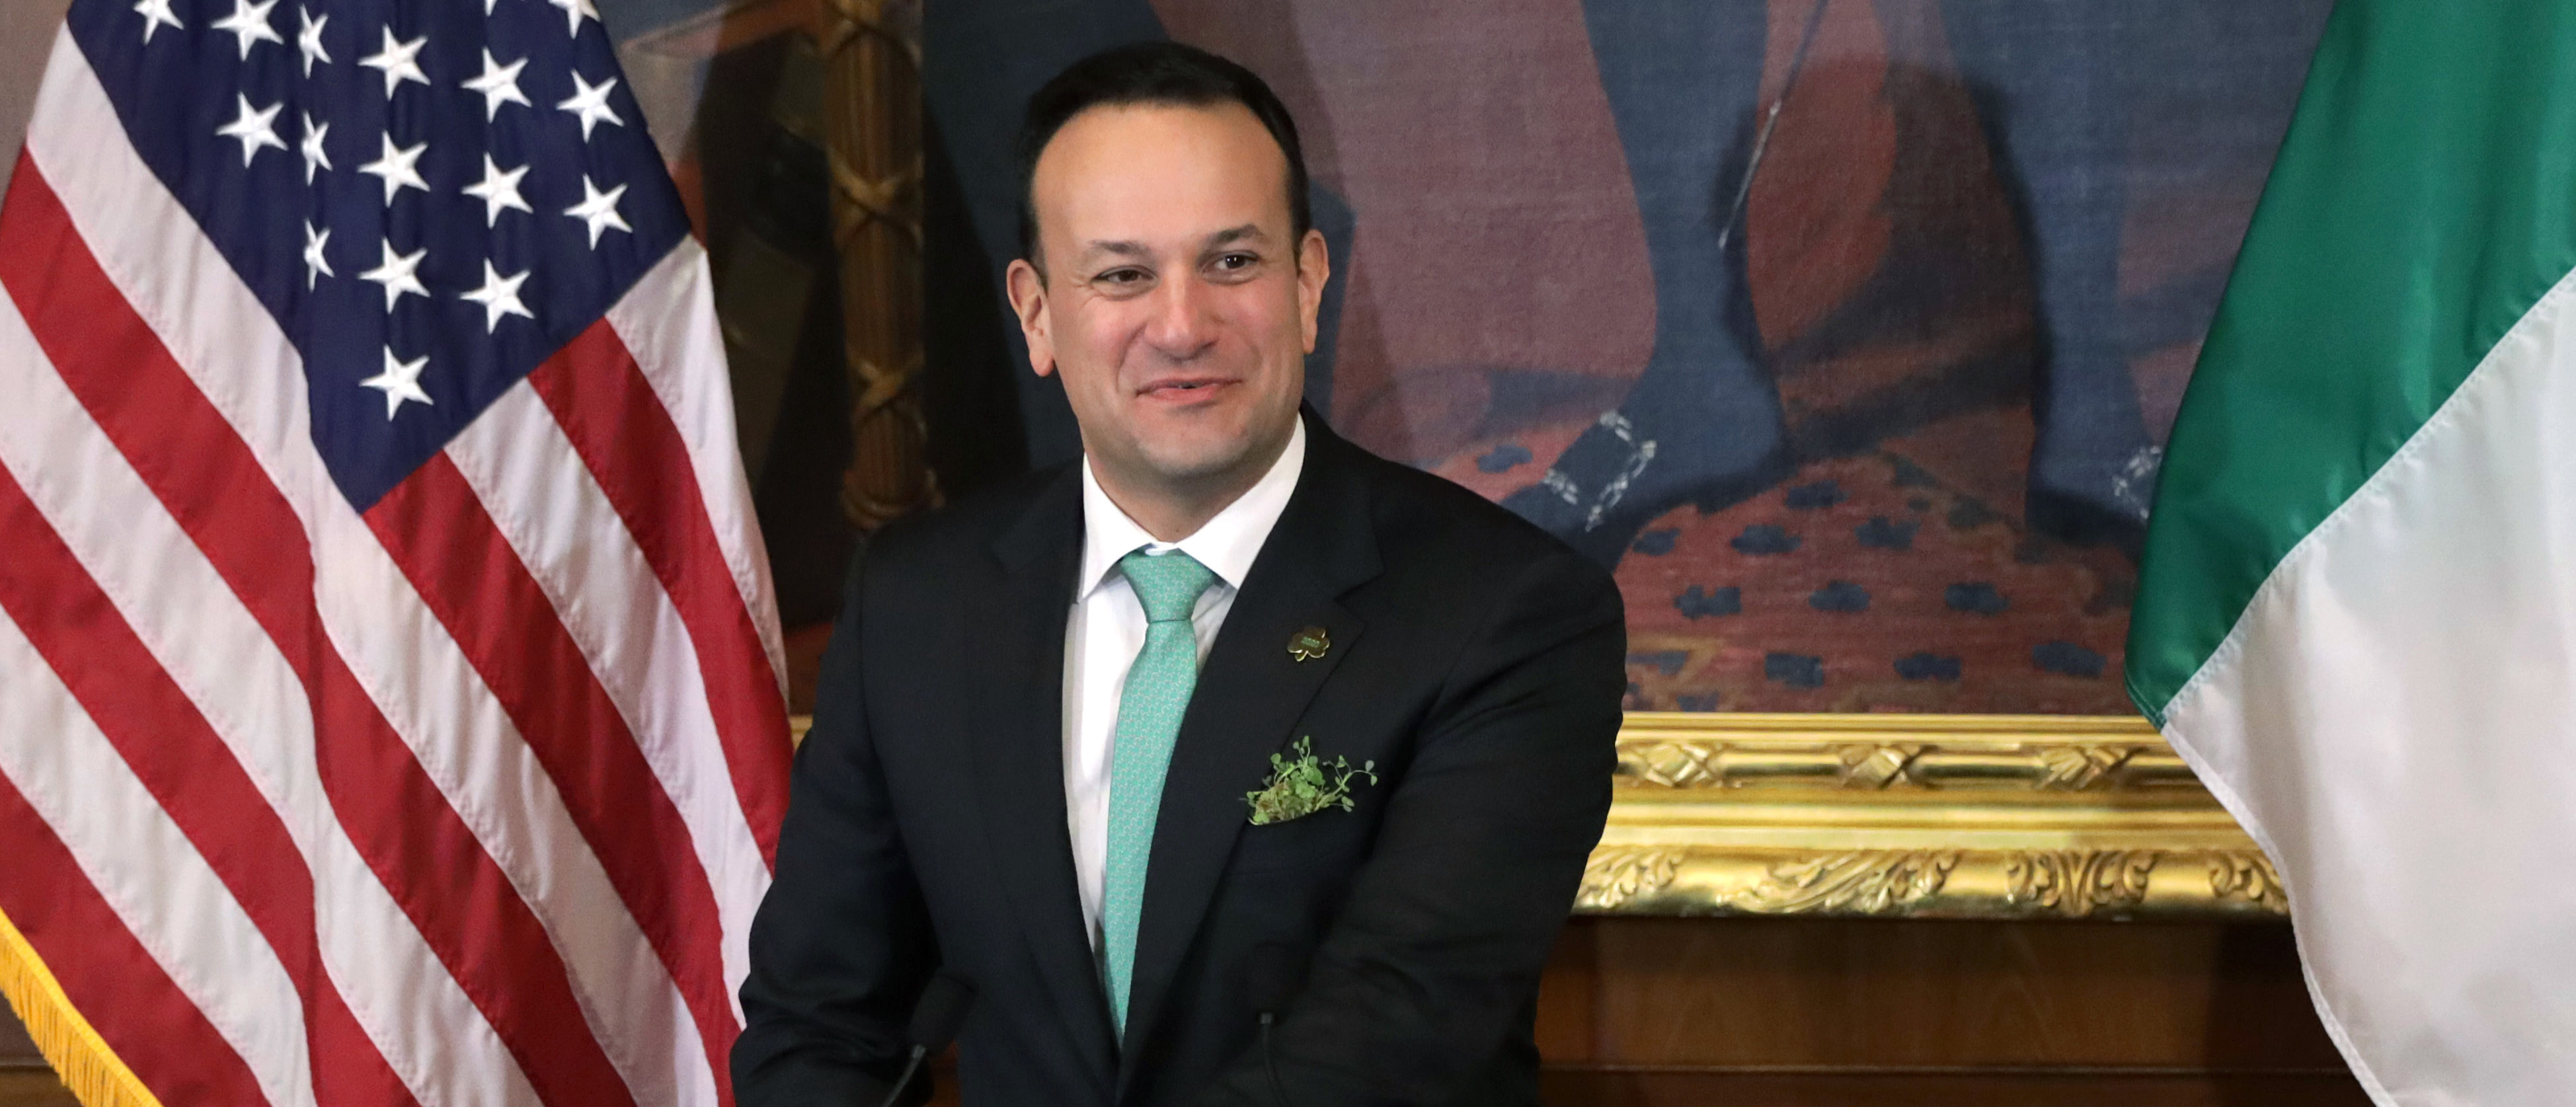 WASHINGTON, DC - MARCH 12: Irish Taoiseach Leo Varadkar speaks during the annual Friends of Ireland luncheon at the Rayburn Room of U.S. Capitol March 12, 2020 in Washington, DC. The Congressional Friends of Ireland hosted the annual luncheon to mark St. Patrick's Day. (Photo by Alex Wong/Getty Images)